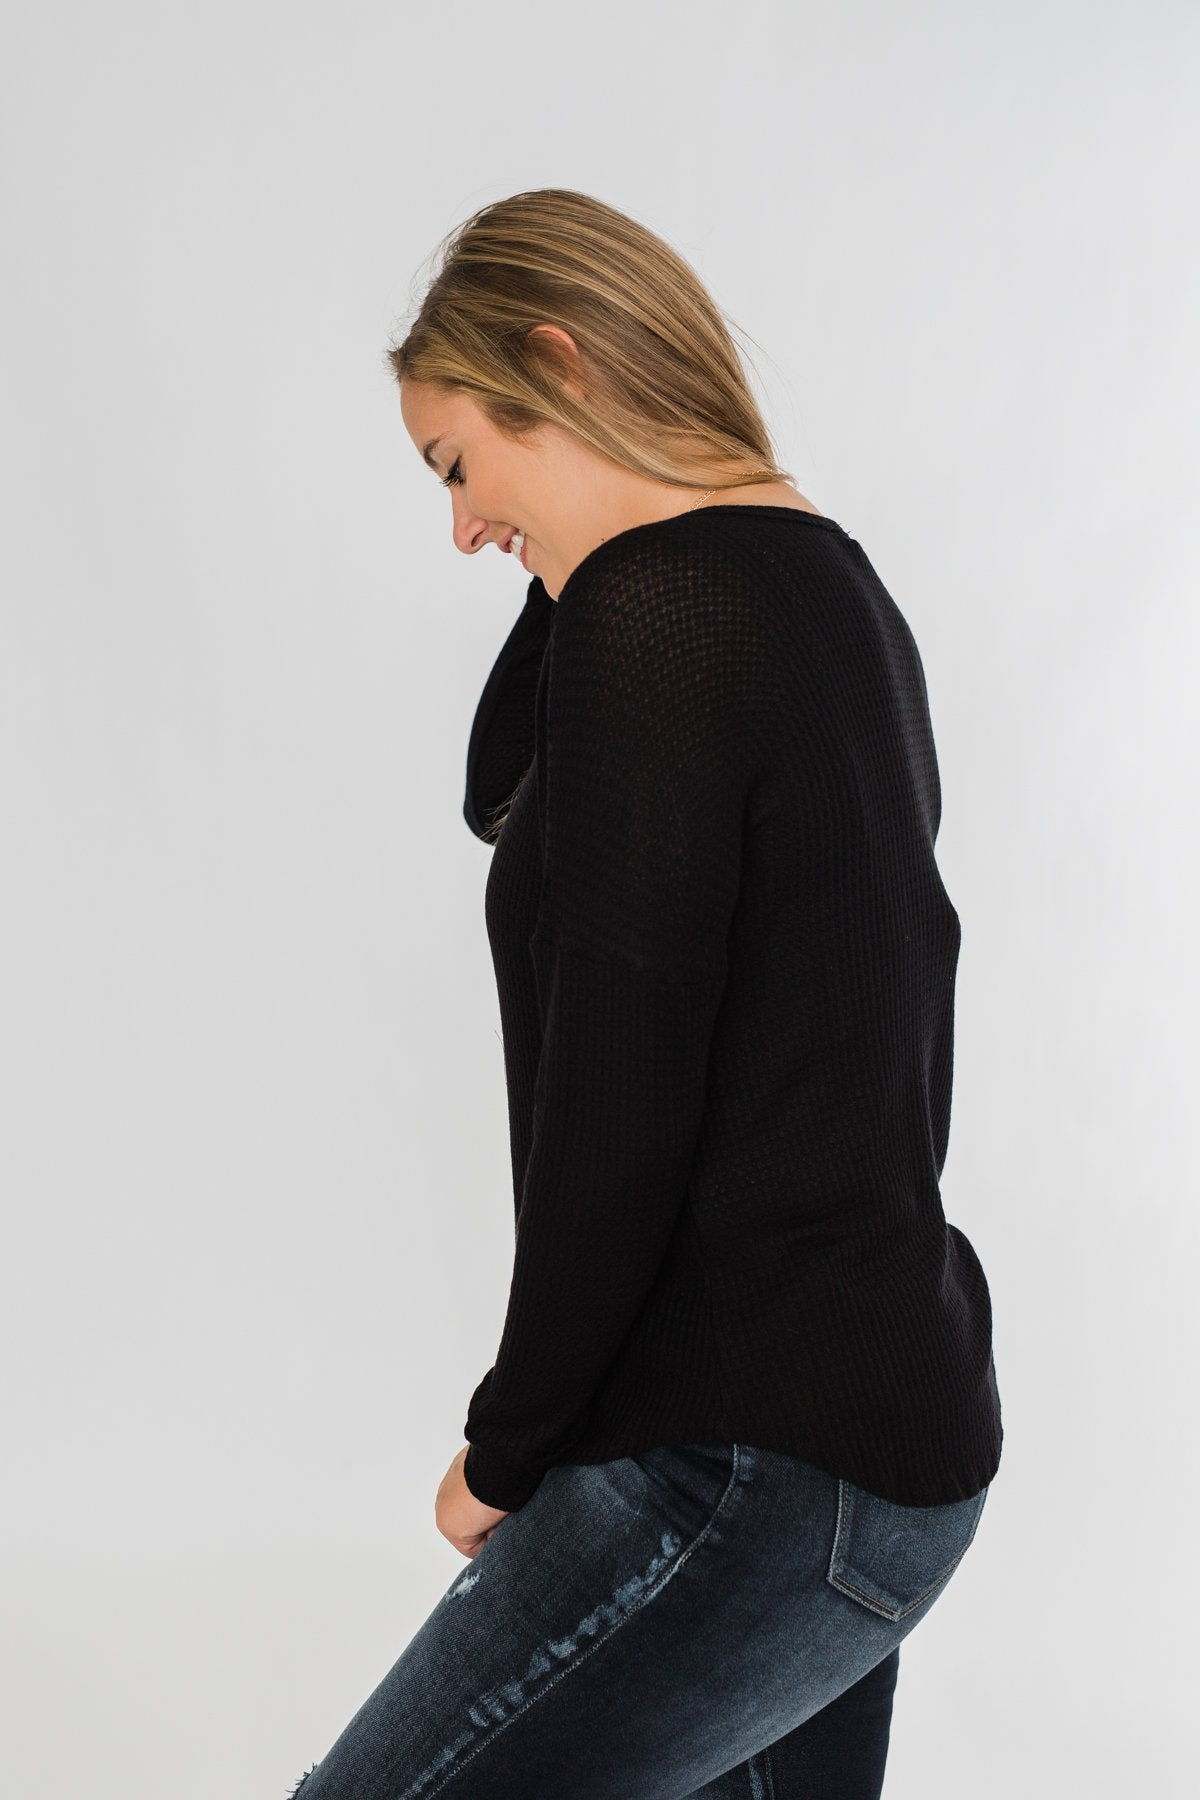 Knowing You V-Neck Thermal Top- Black